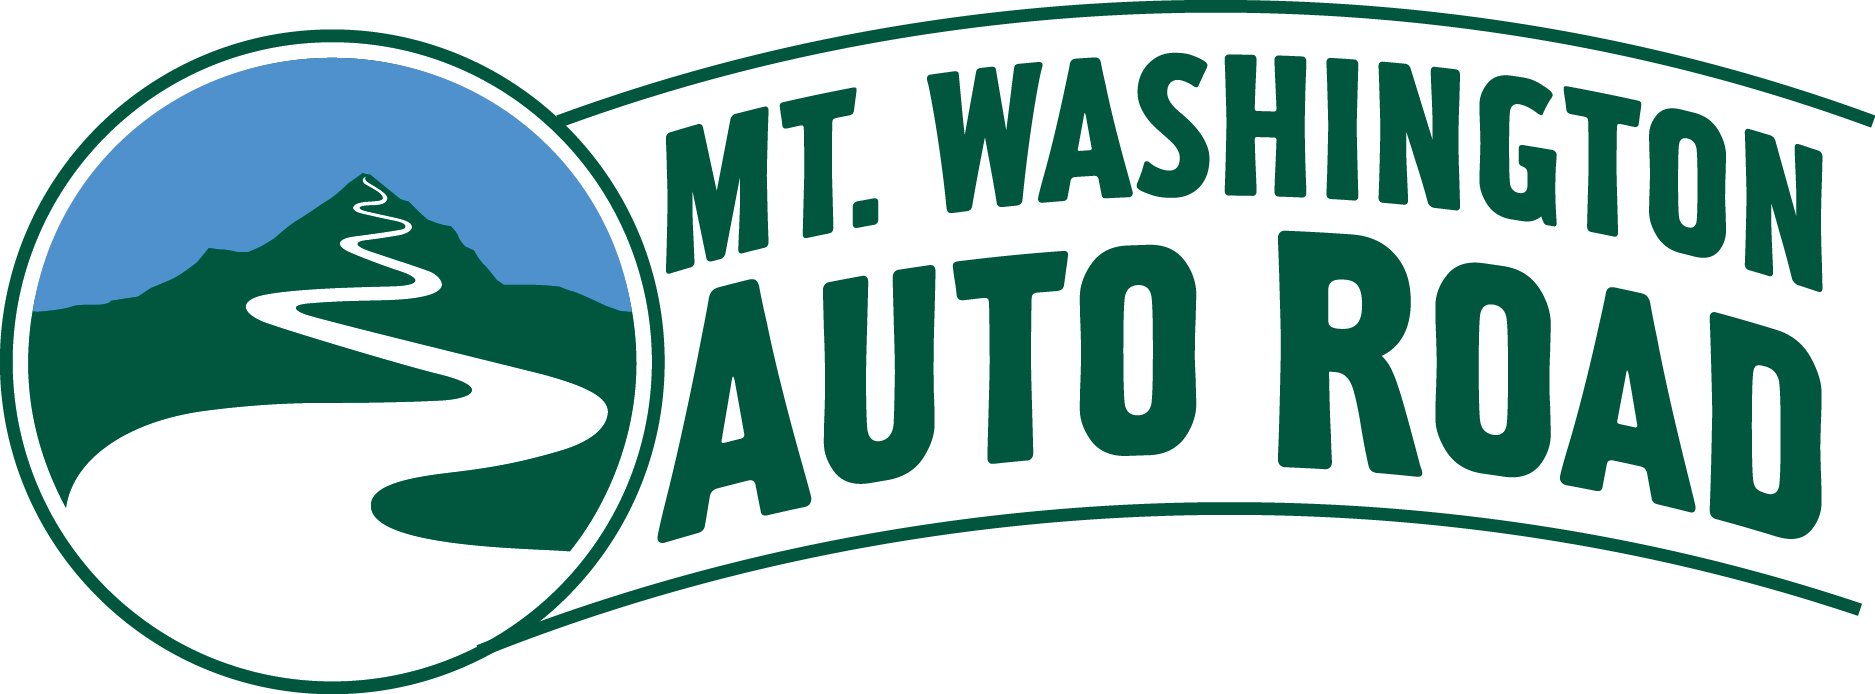 Mount Washington Auto Road logo